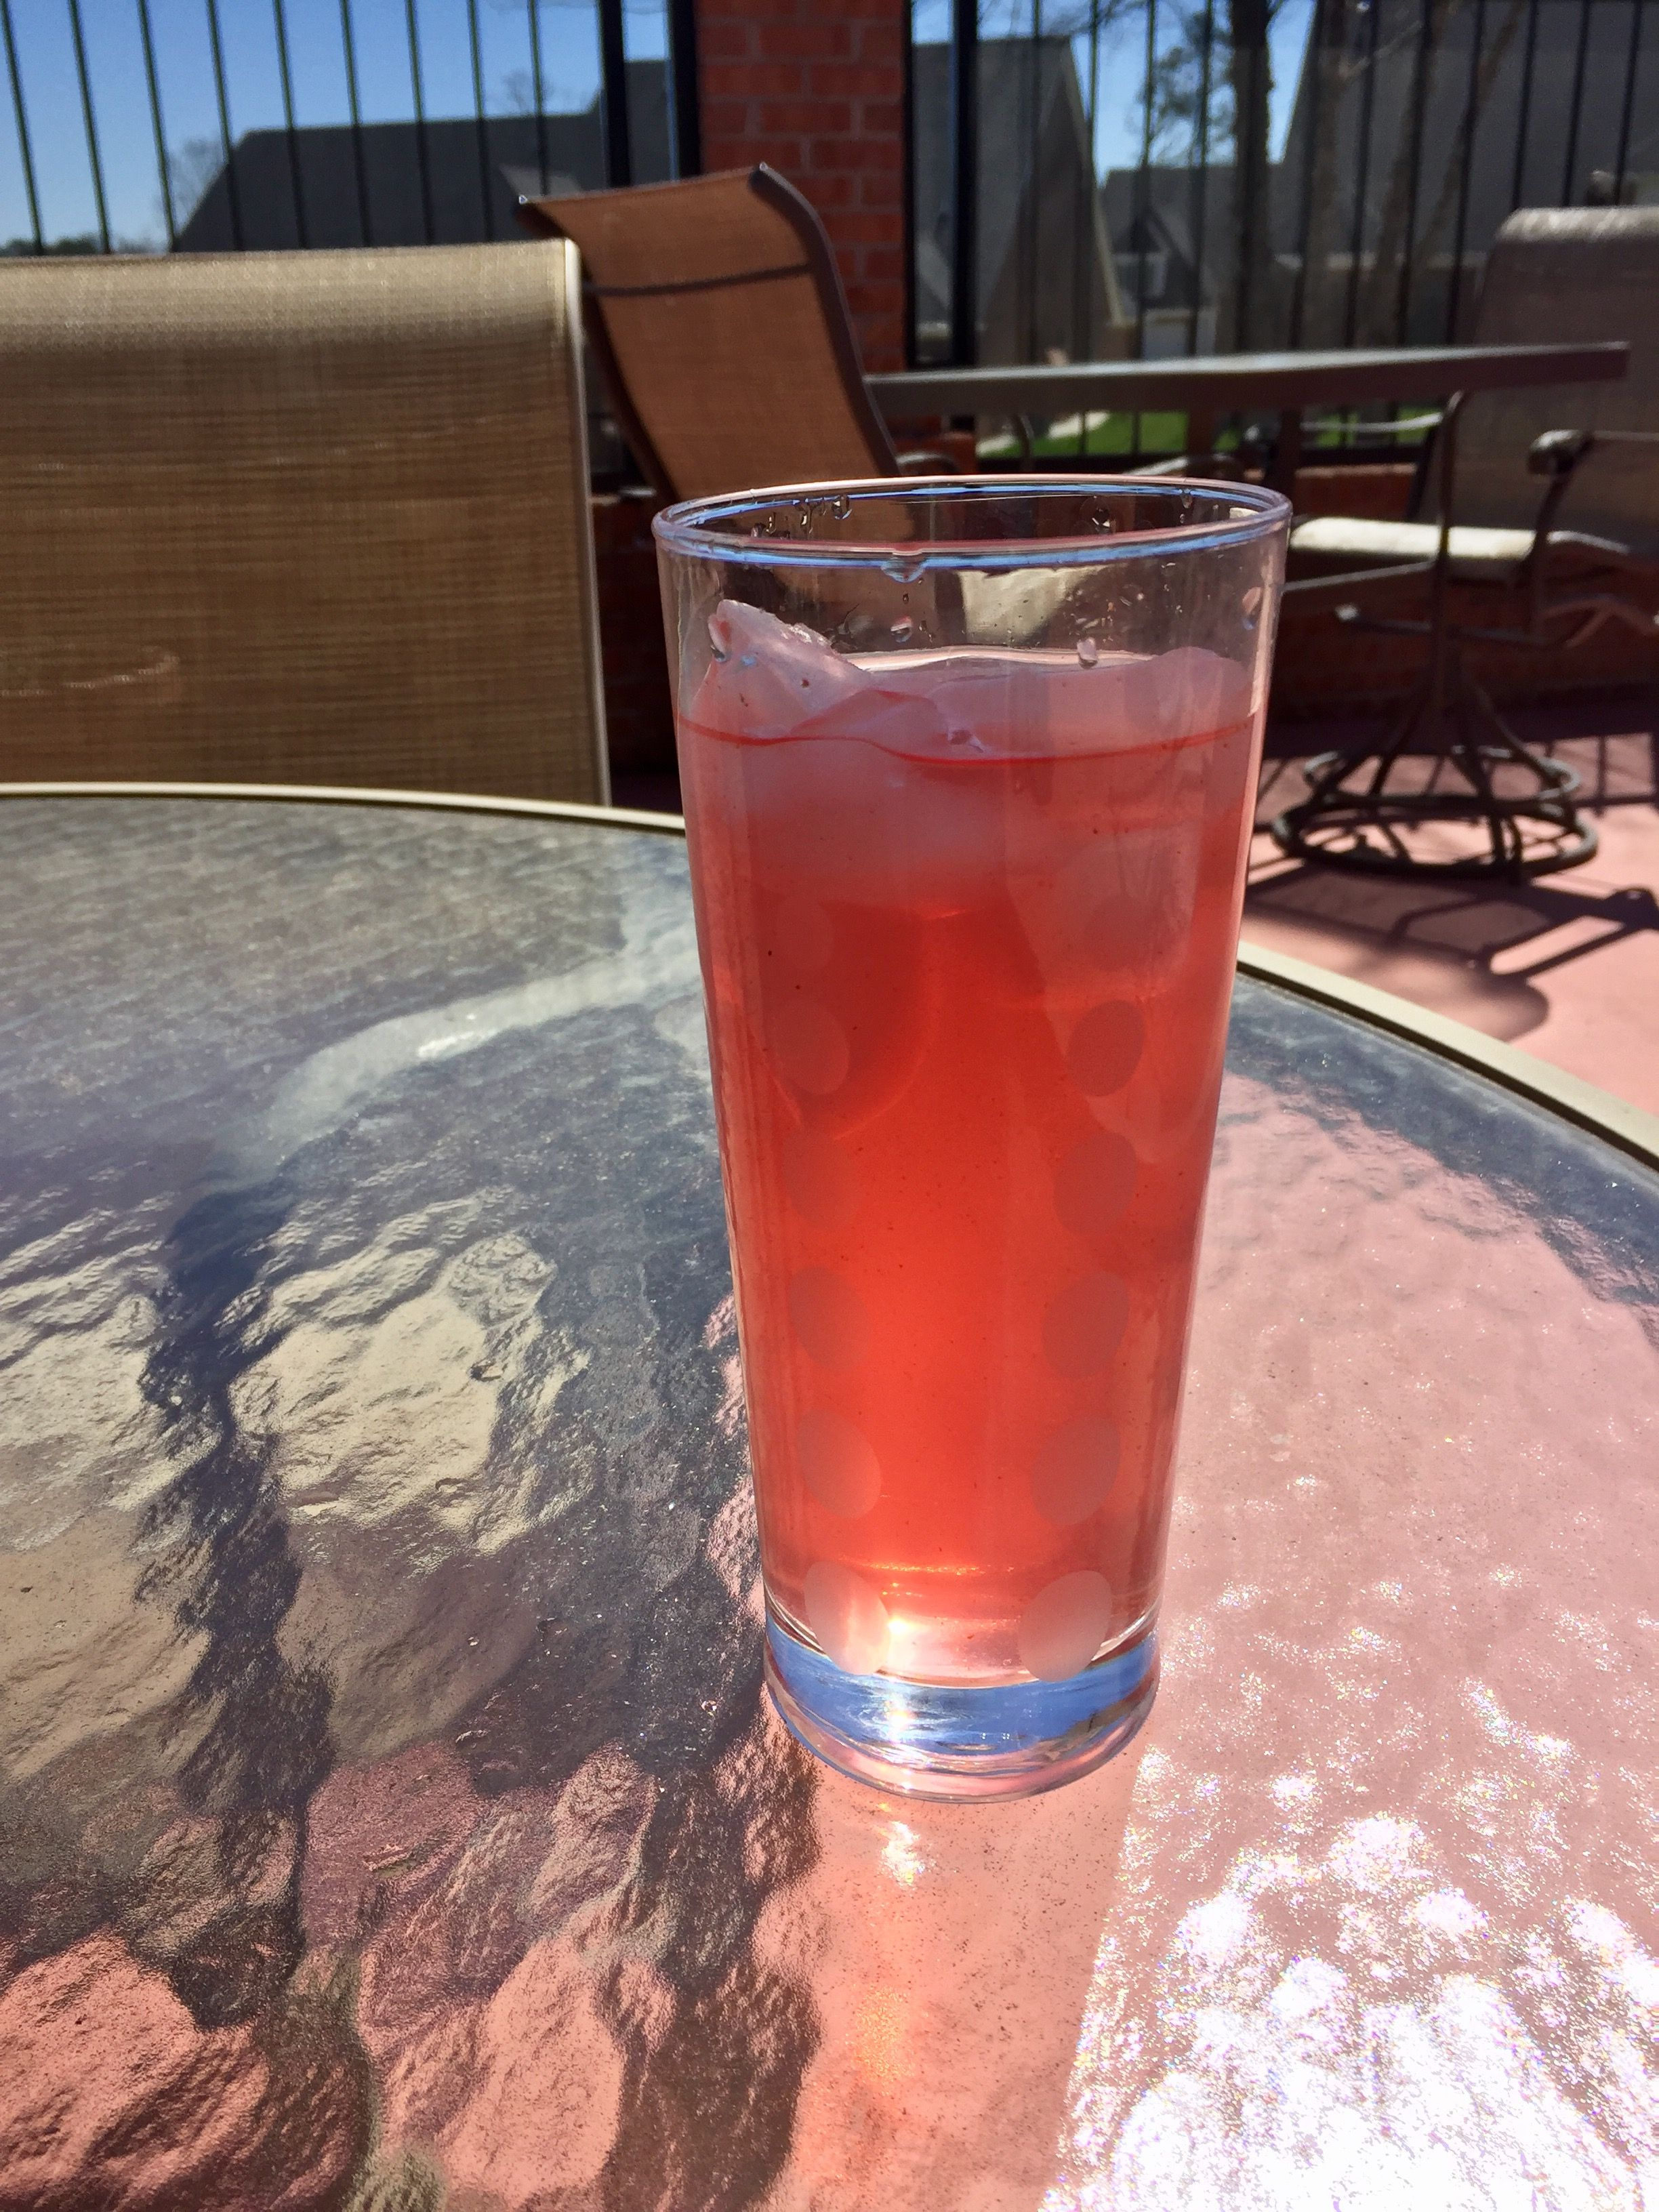 Cranberry Lemonade Sweetened With Stevia And Cayenne Pepper Very Refreshing In The Summer 1 Cup O Cranberry Lemonade Cayenne Lemonade Recipe Lemonade Recipes